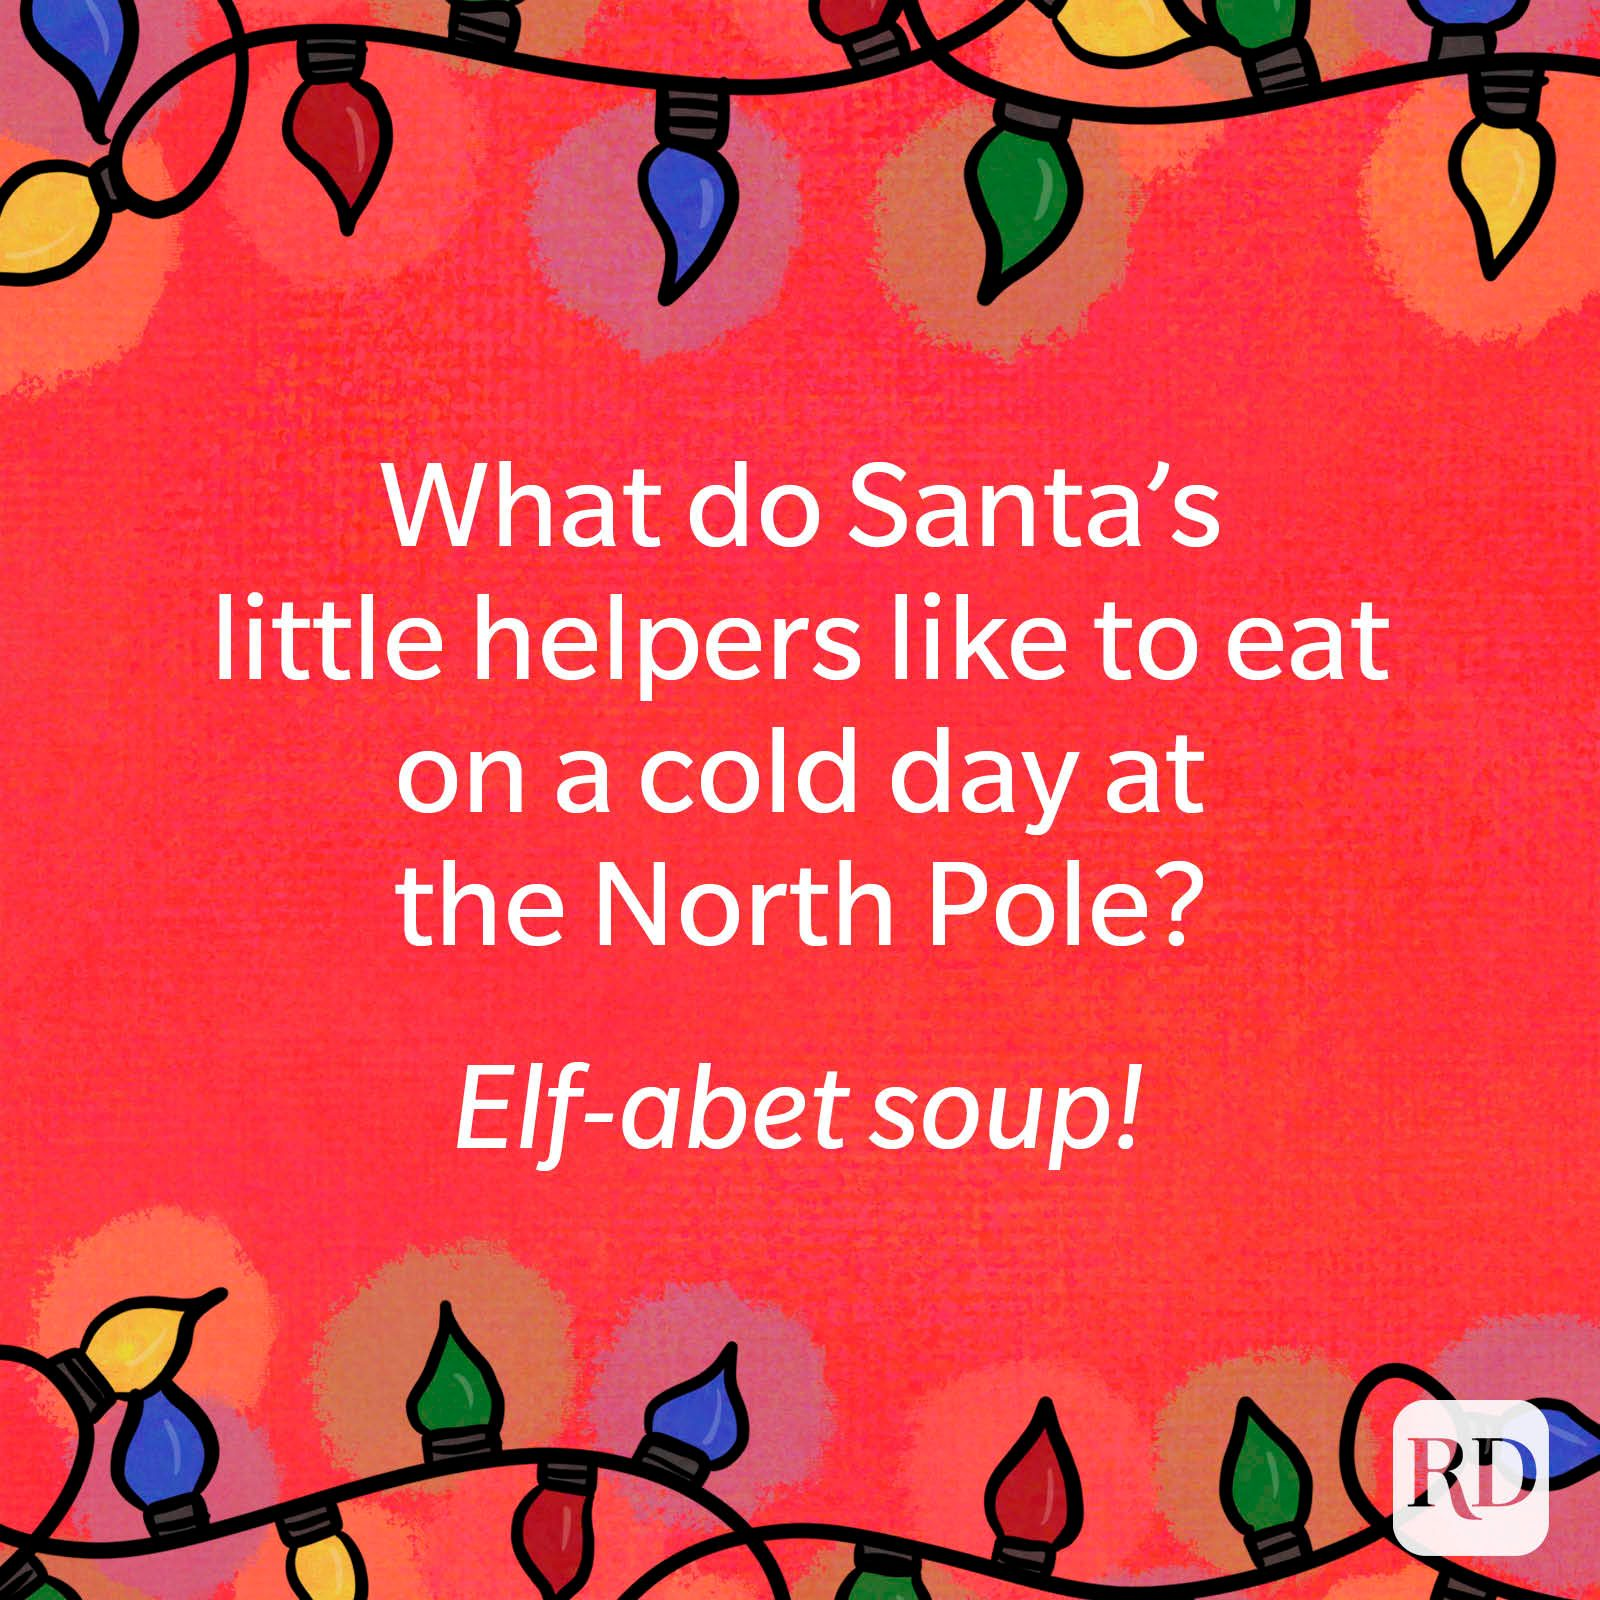 What do Santa's little helpers like to eat on a cold day at the North Pole?